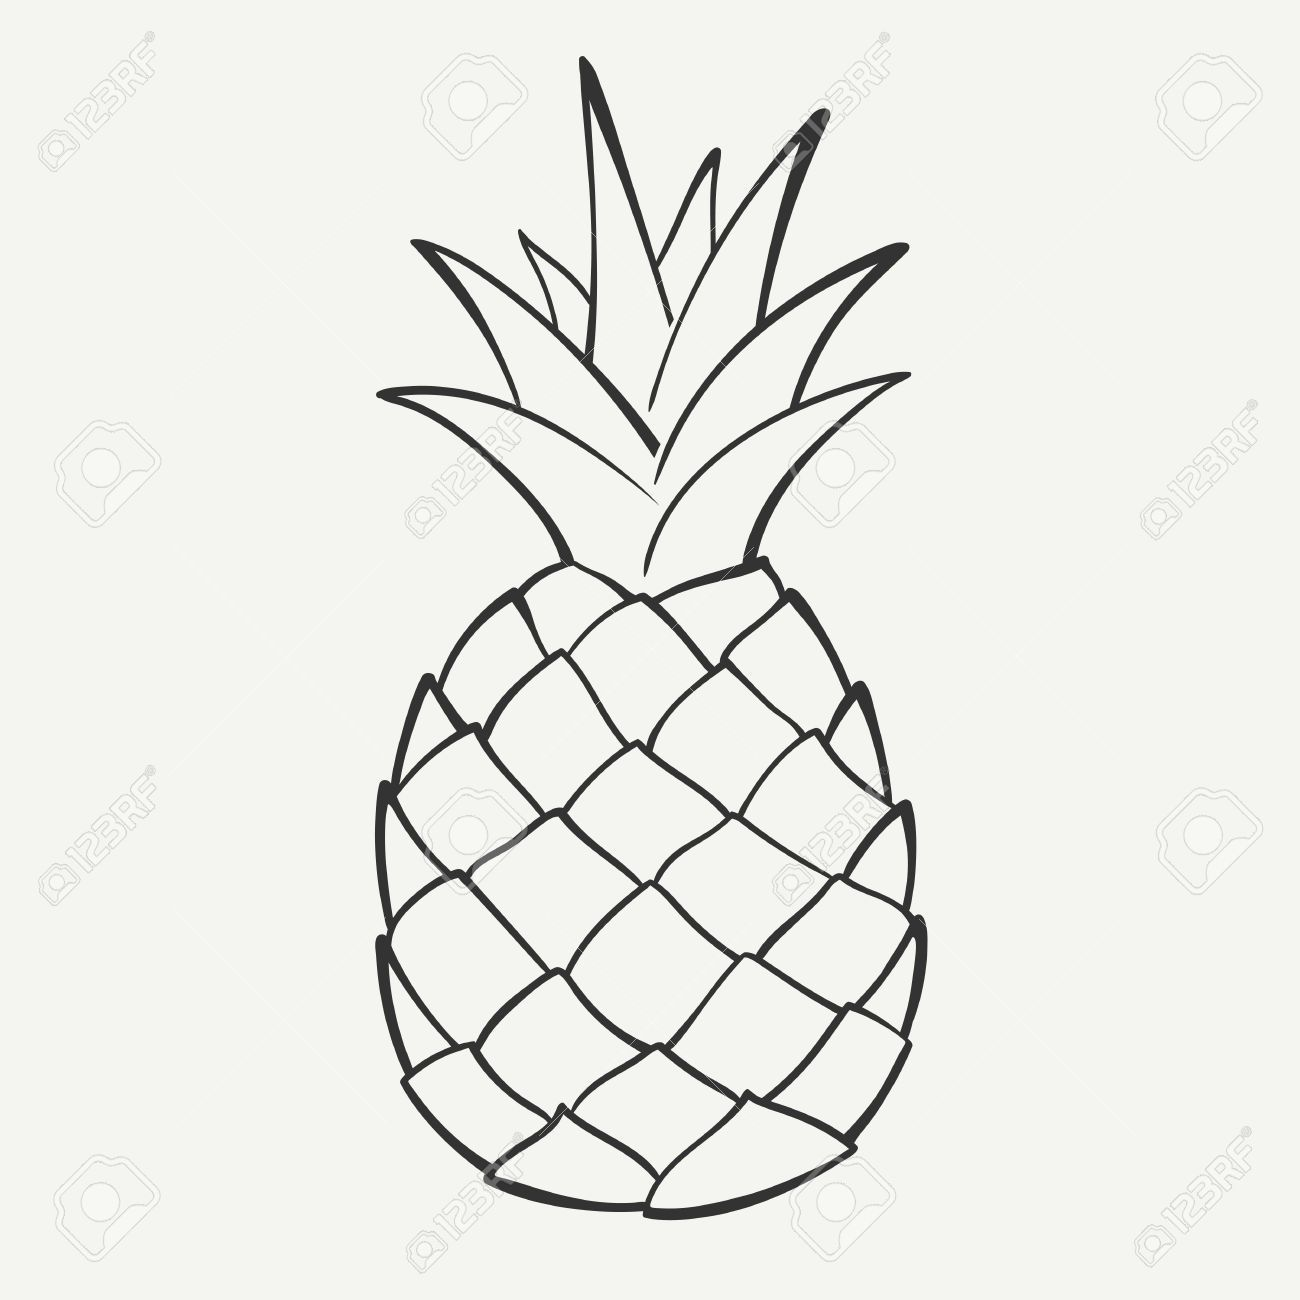 Outline black and white. Clipart pineapple